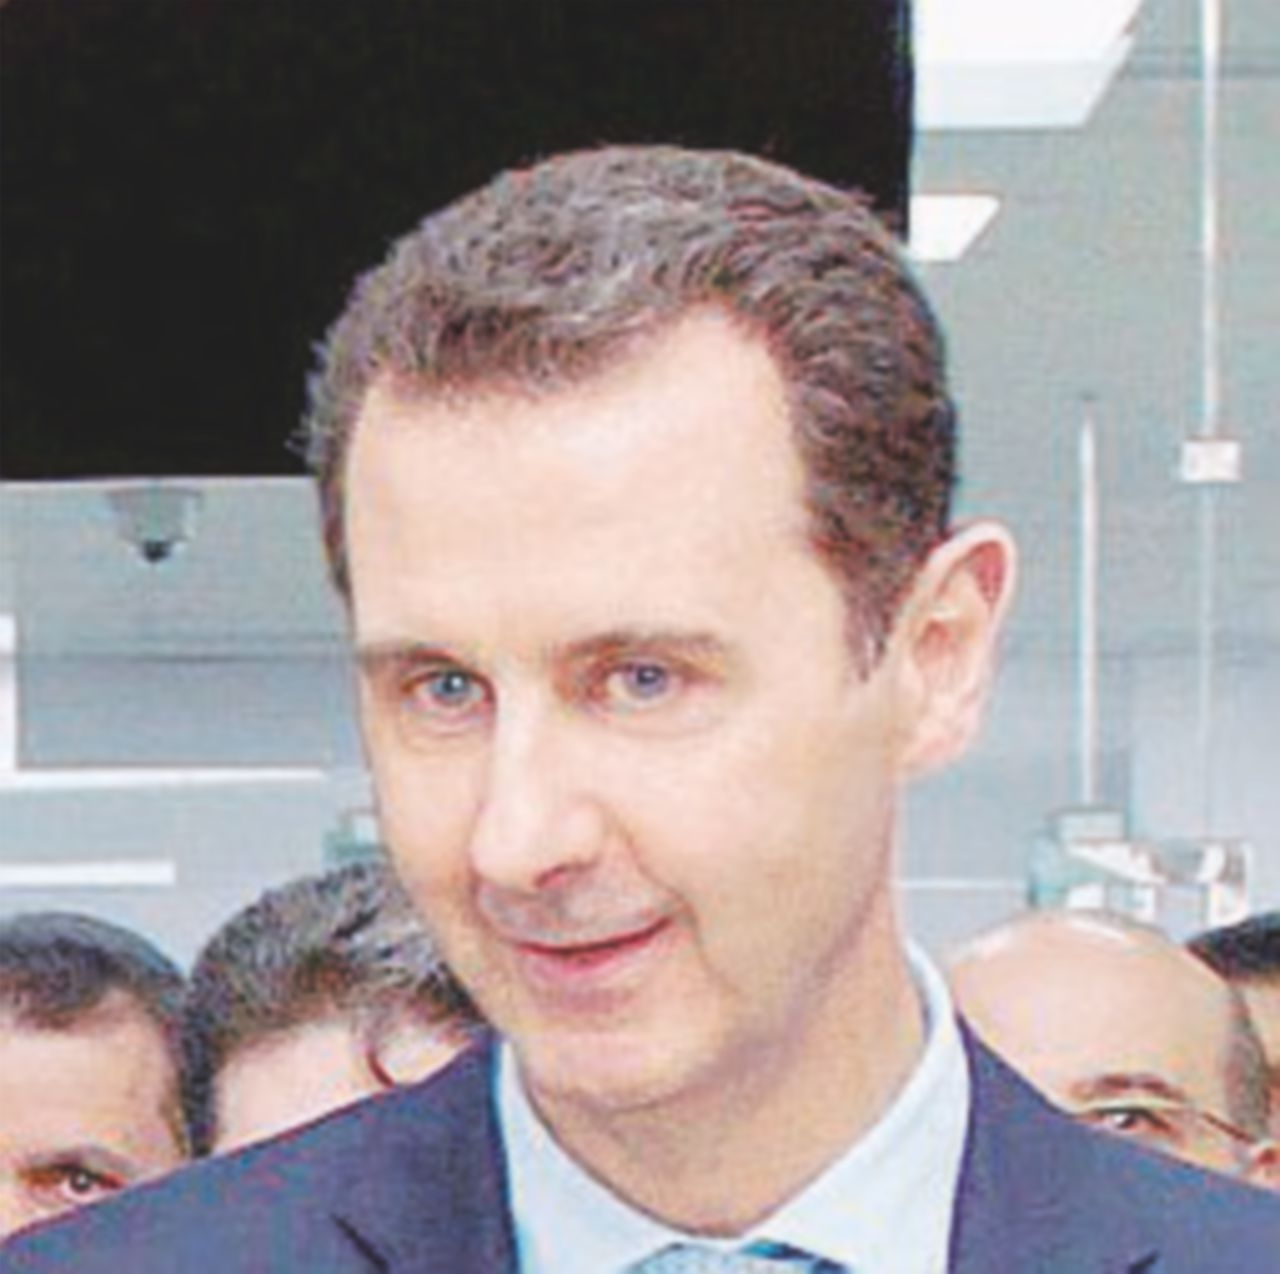 Assad butta via il piano Onu: il popolo dice no al federalismo